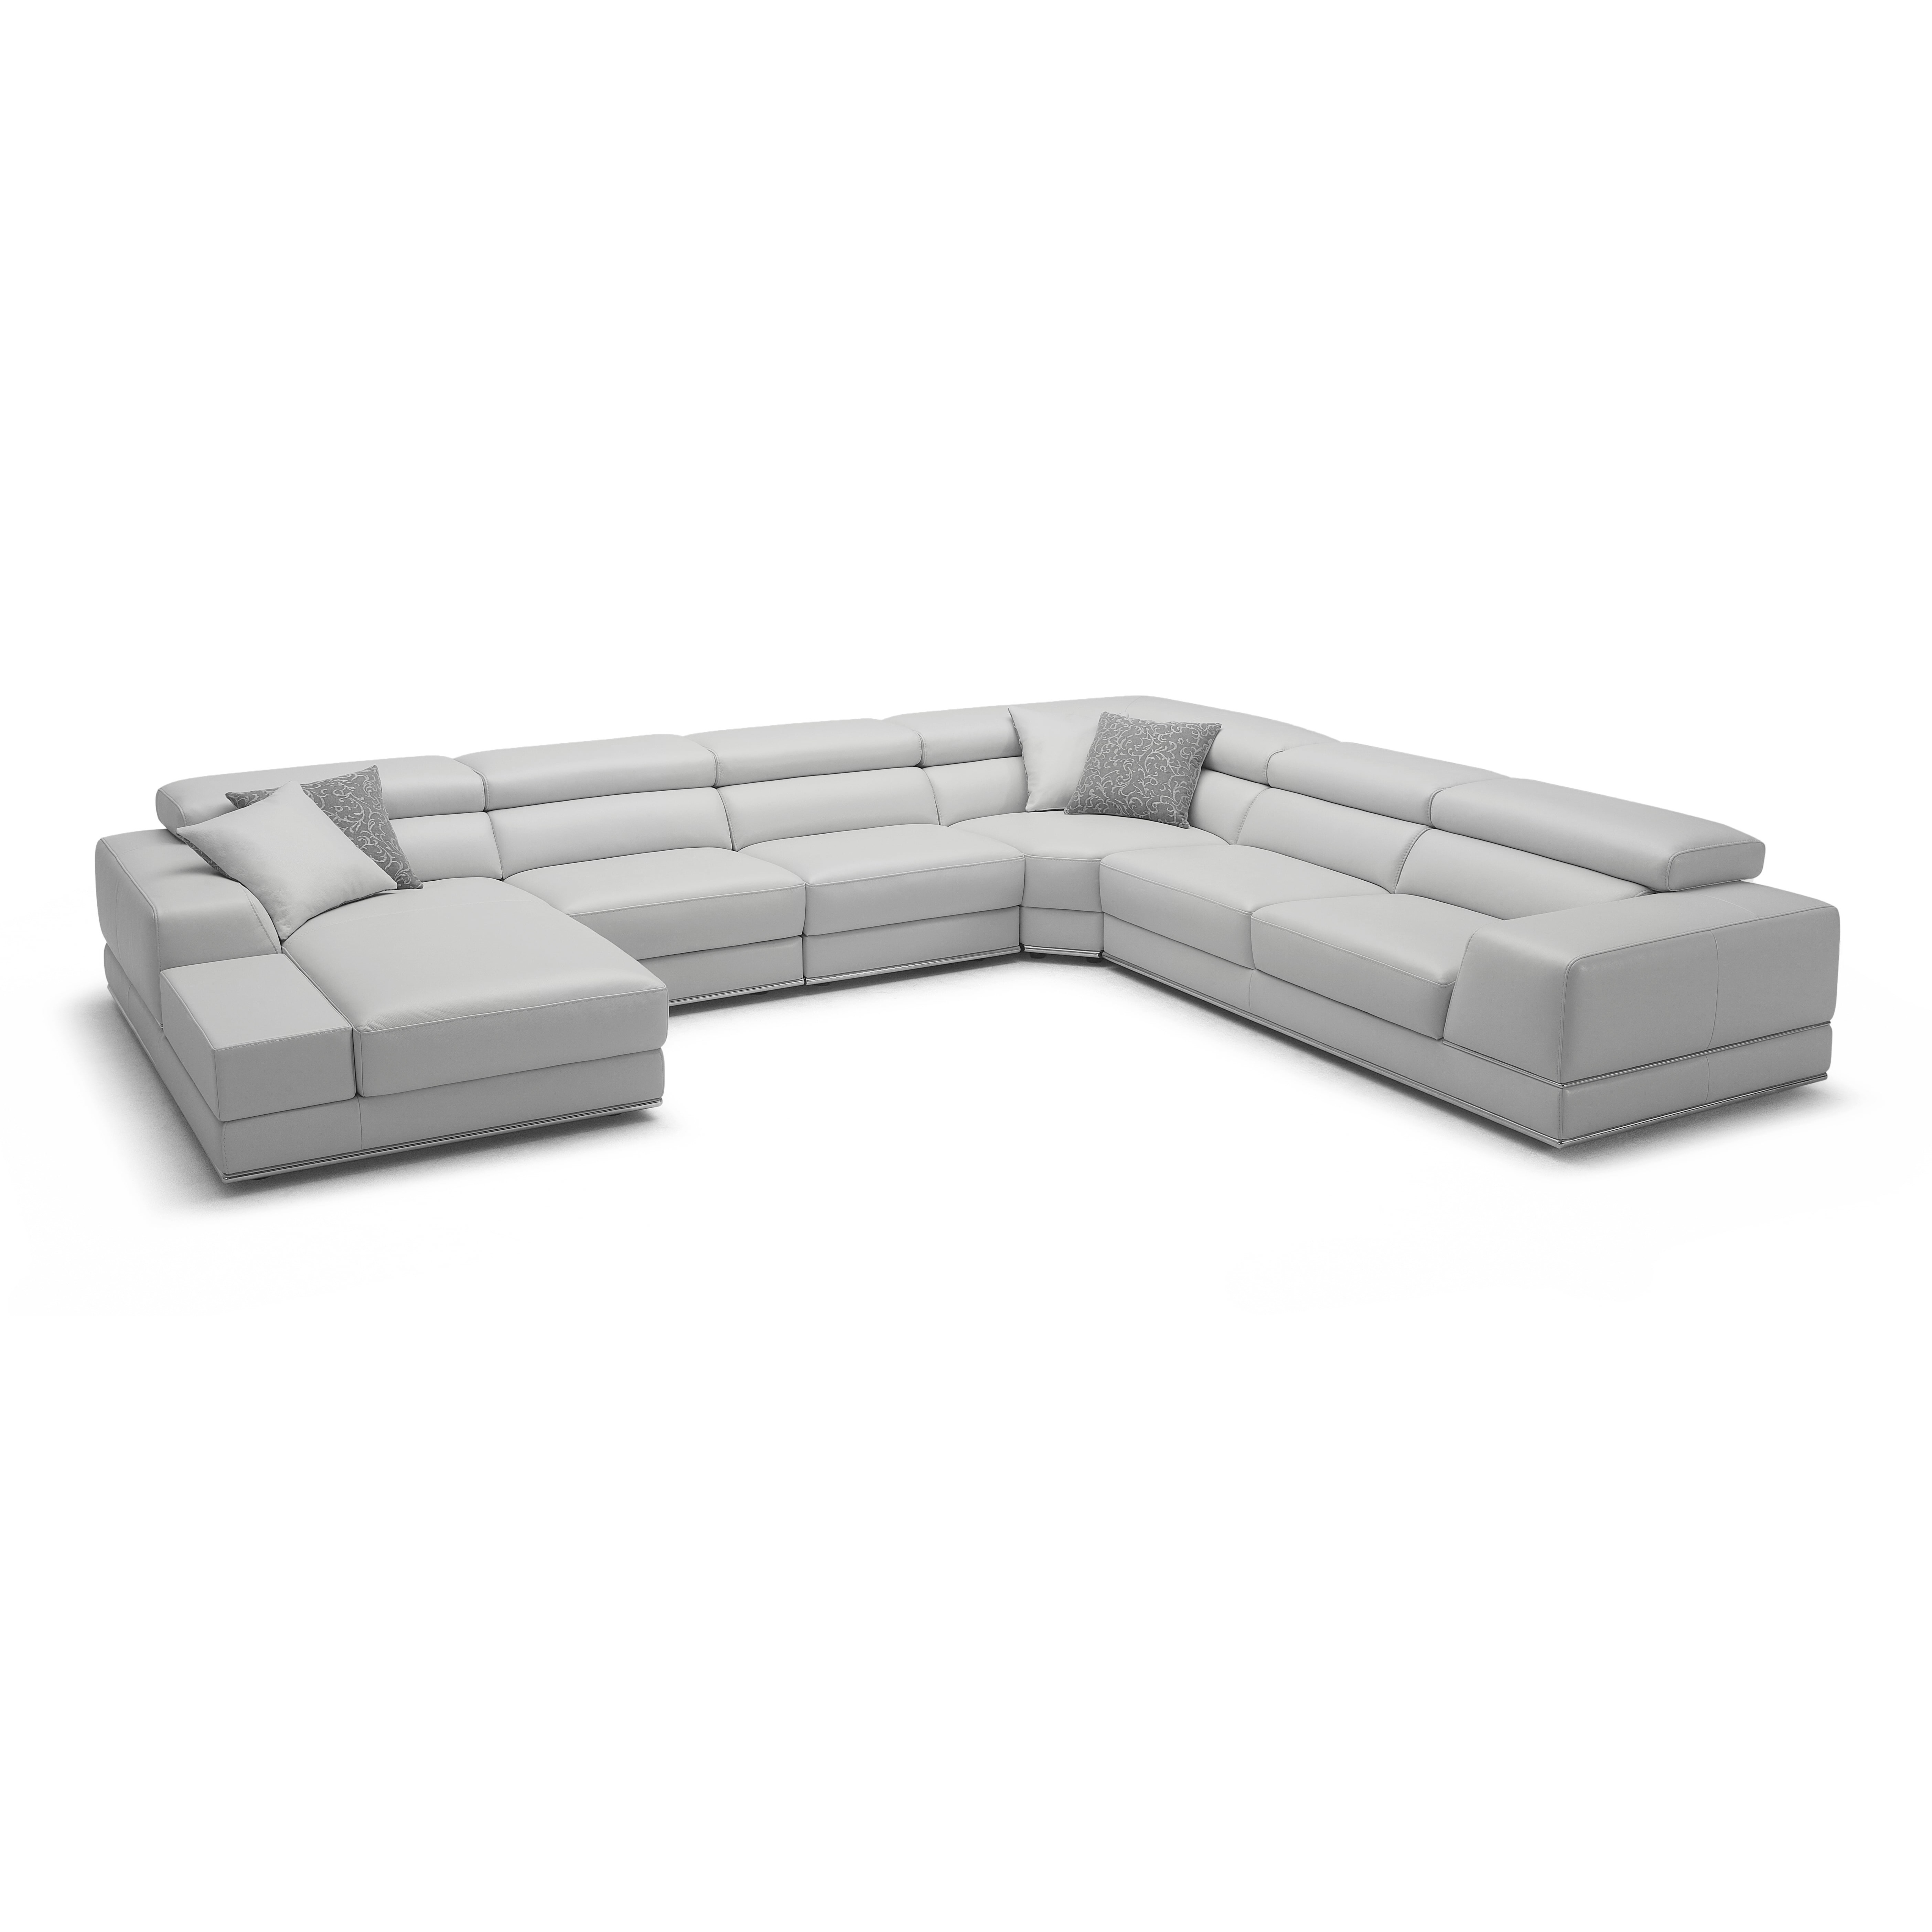 Most Recently Released Furniture: Mesmerizing Costco Sectionals Sofa For Cozy Living Room For El Paso Tx Sectional Sofas (View 17 of 20)